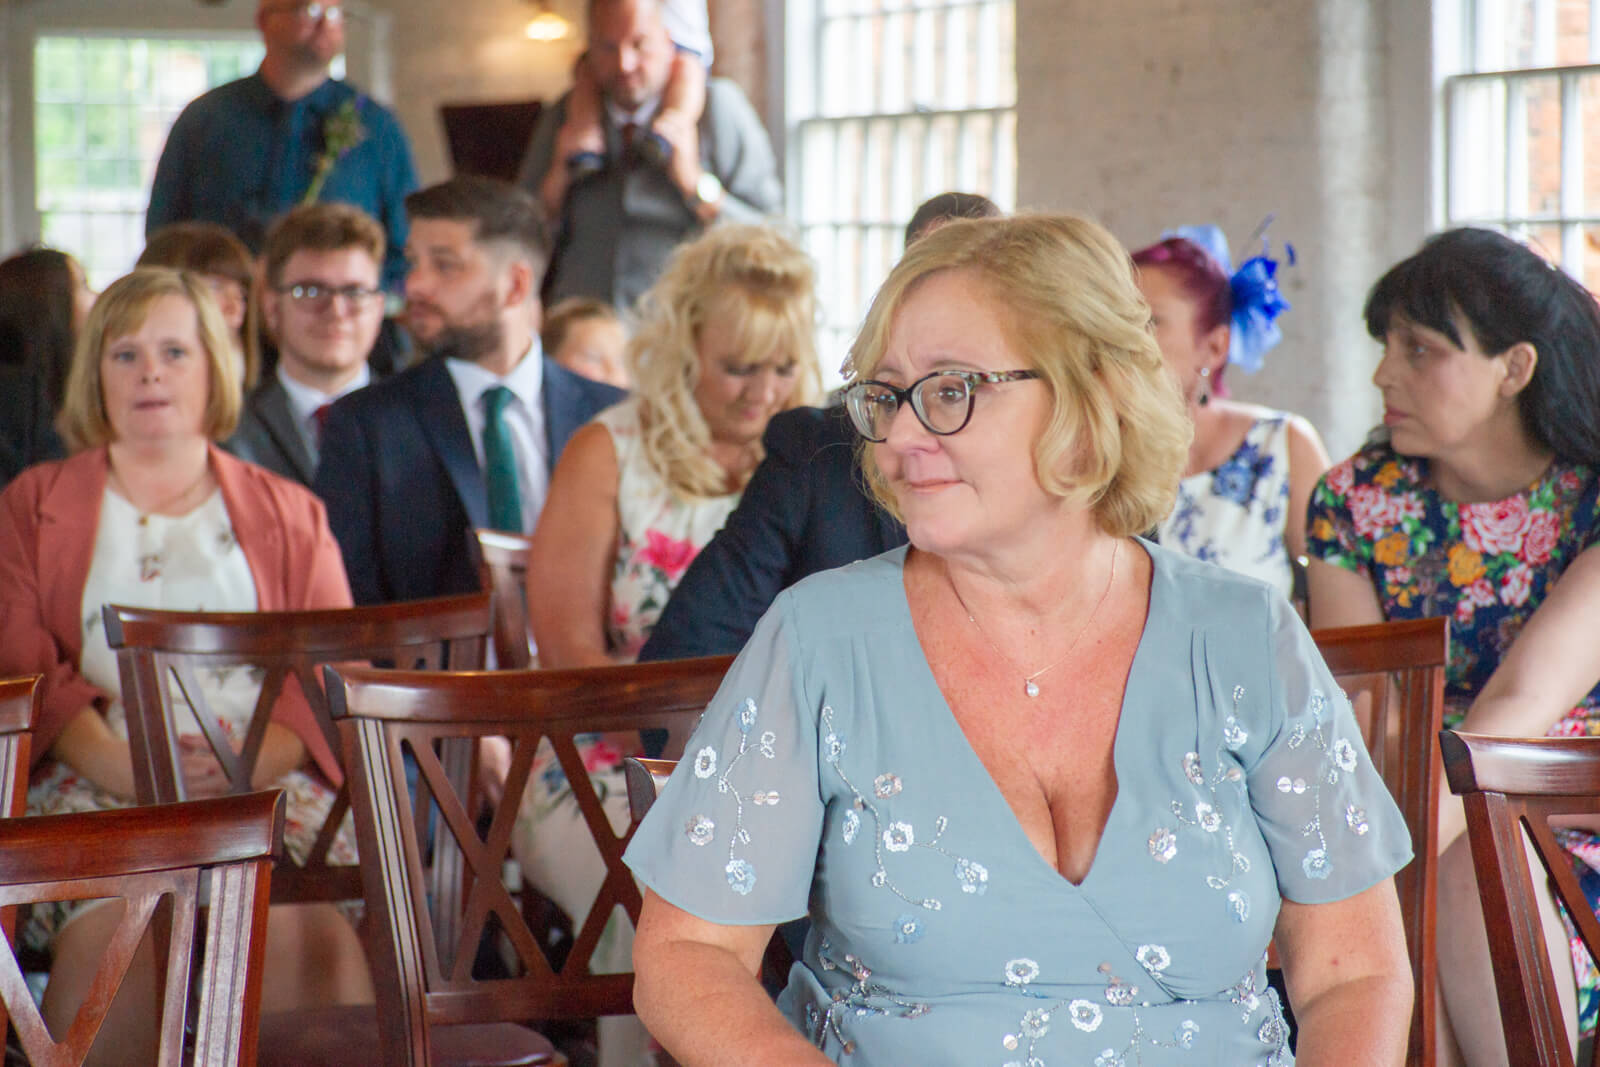 Mother of the bride looks emotional whilst waiting for the ceremony to start